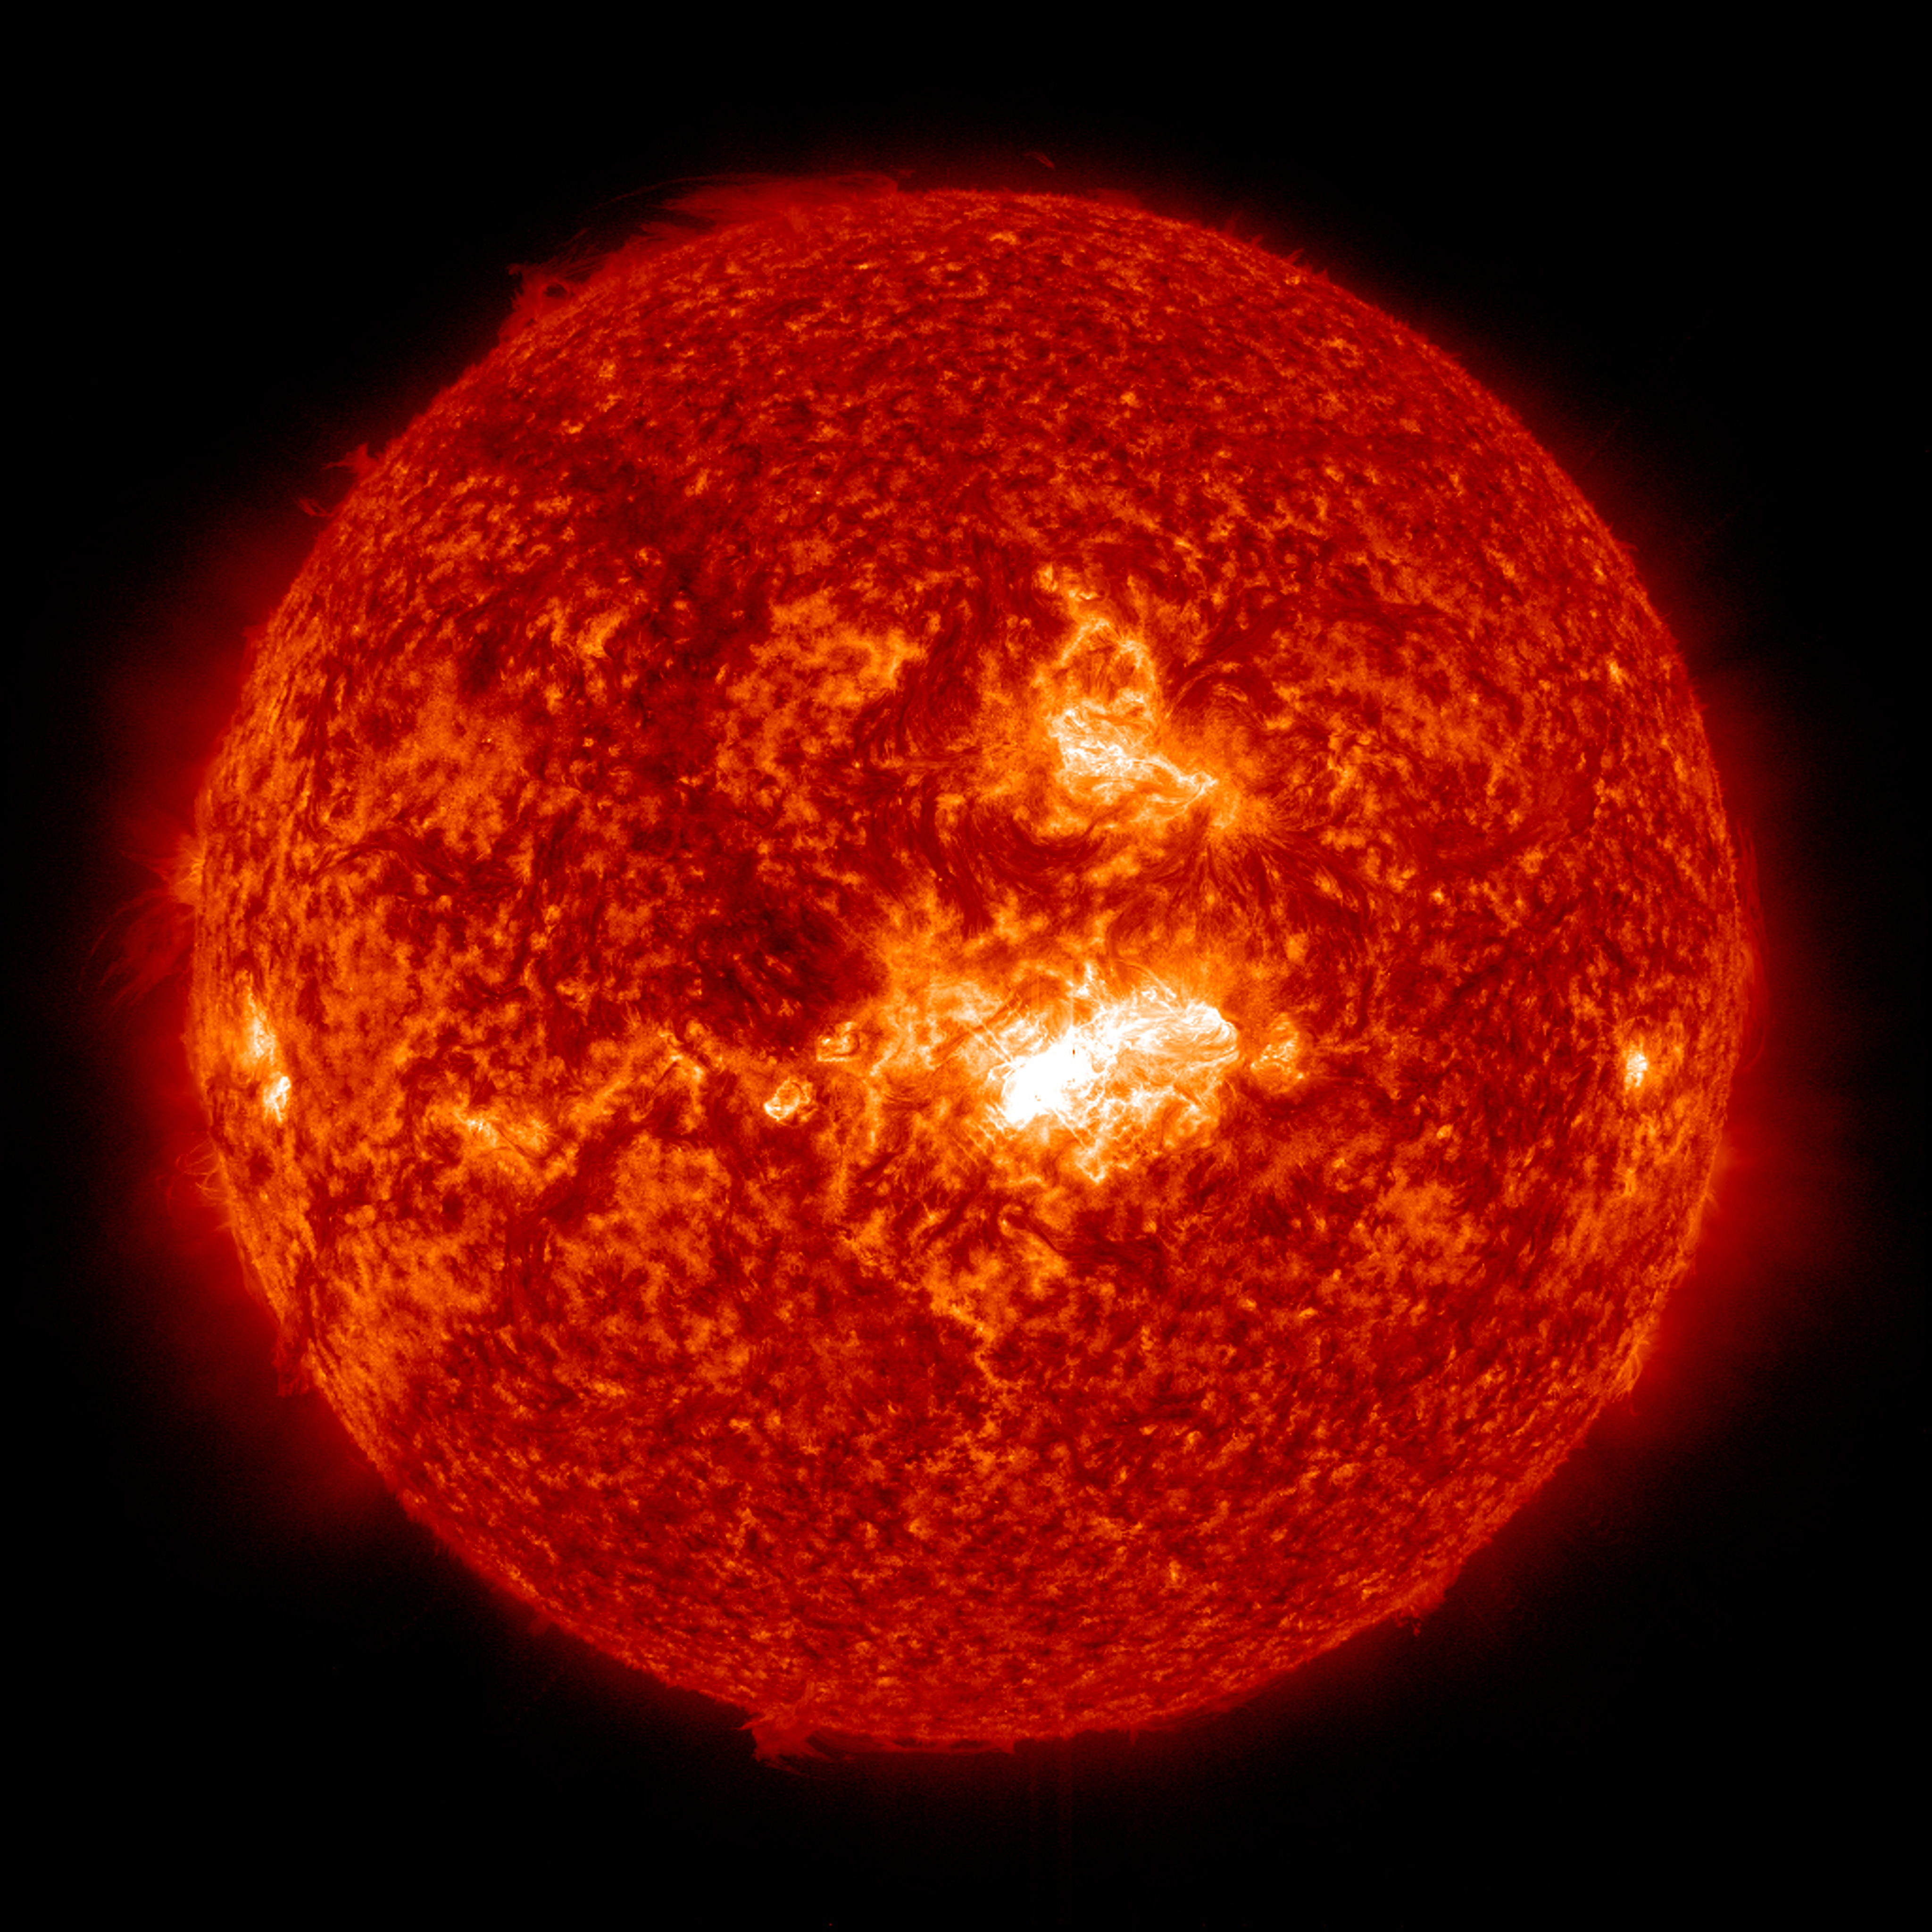 solar flares today nasa warning - photo #29